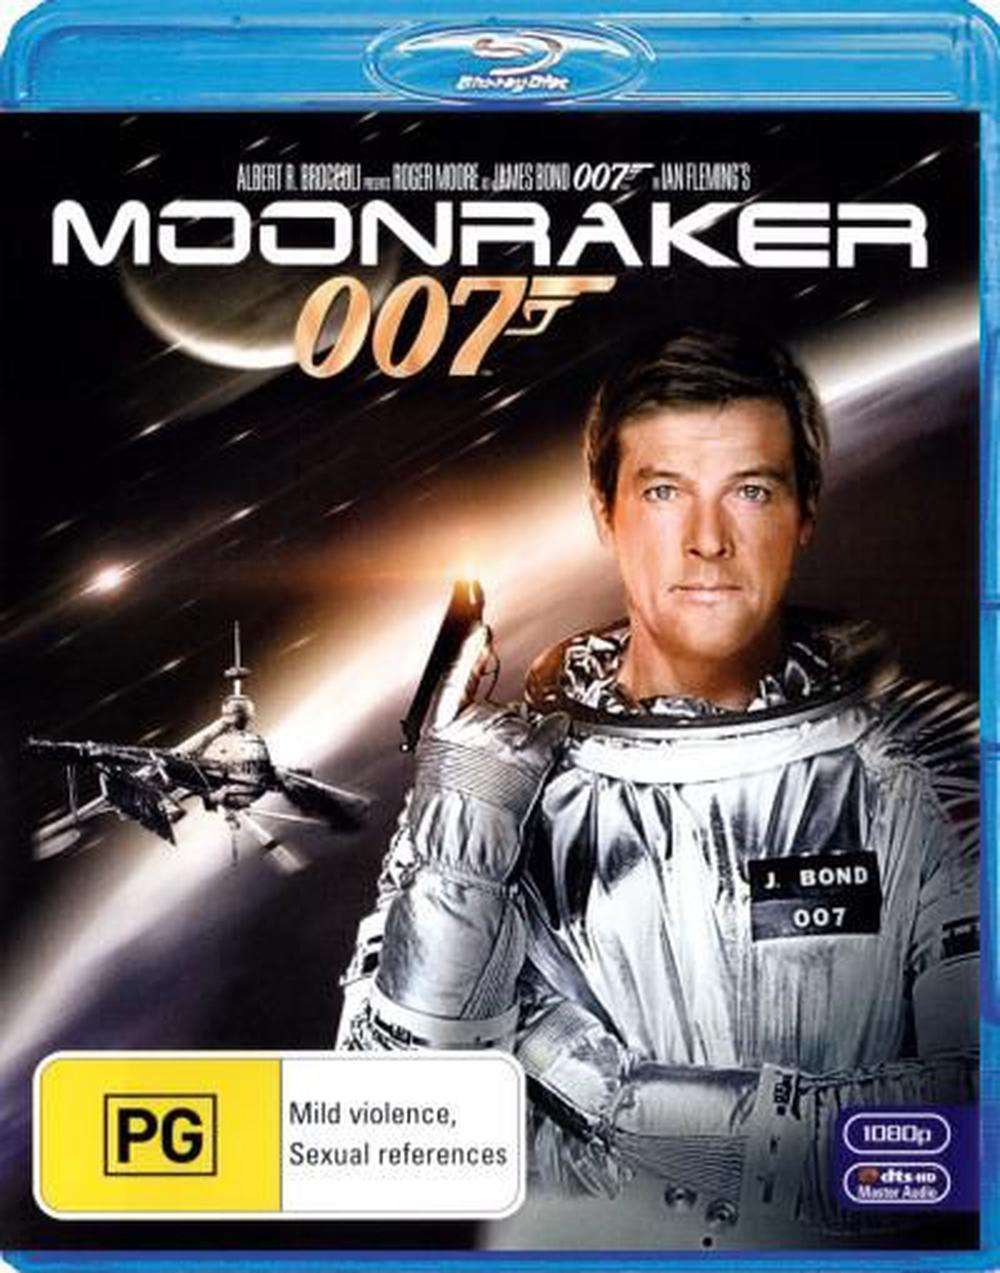 Moonraker (2012 Re-release)